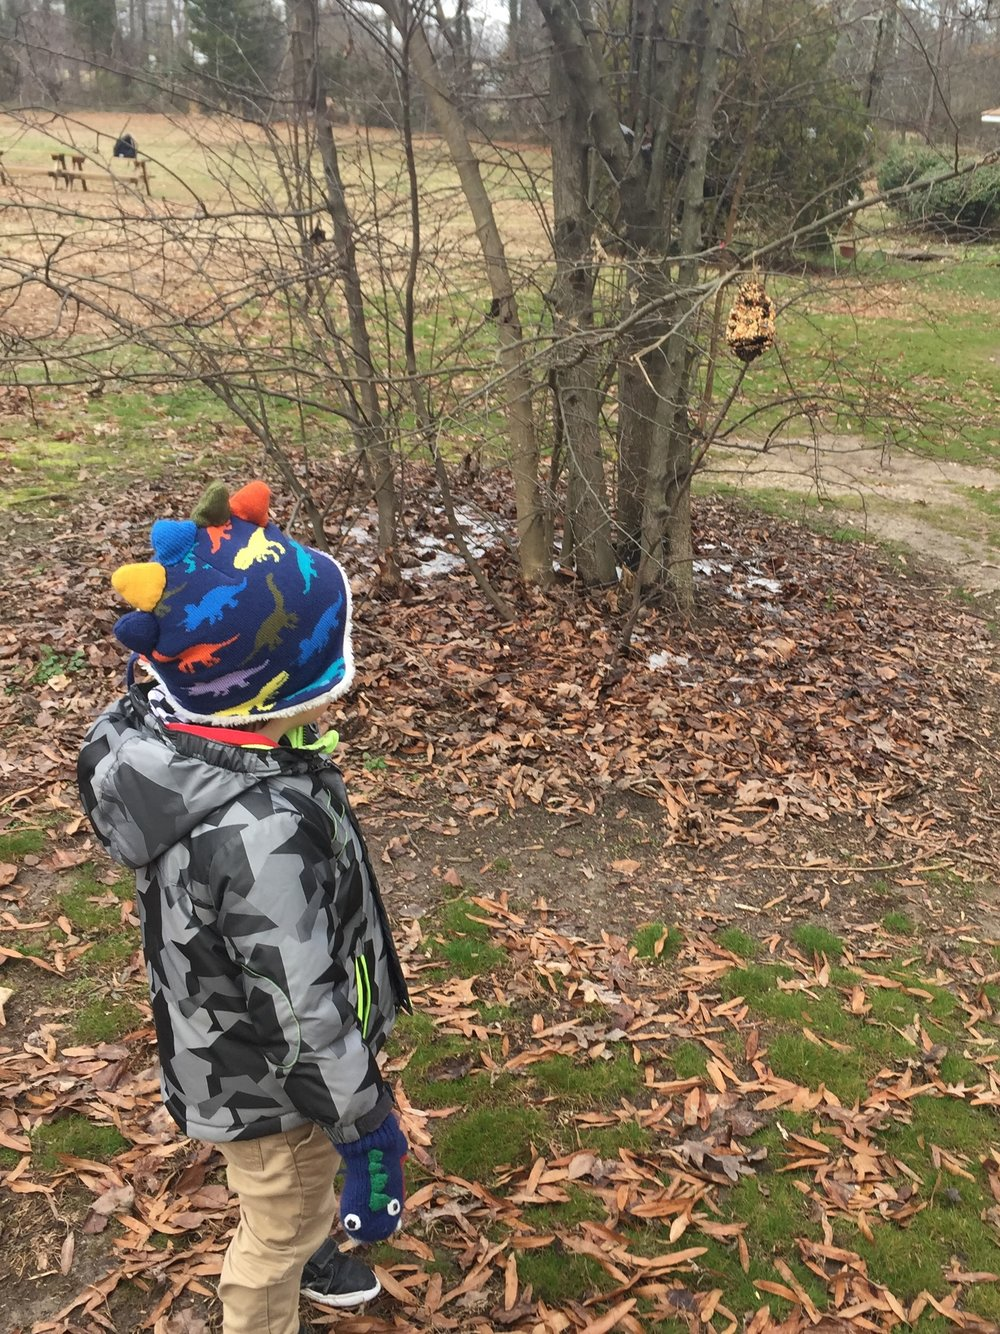 Students tend to the refilling of the bird feeders and even make their own out of pine cones to nourish our creatures with whom we share a habitat.Often, children will request to bring out binoculars to seek out our feathered friends. -